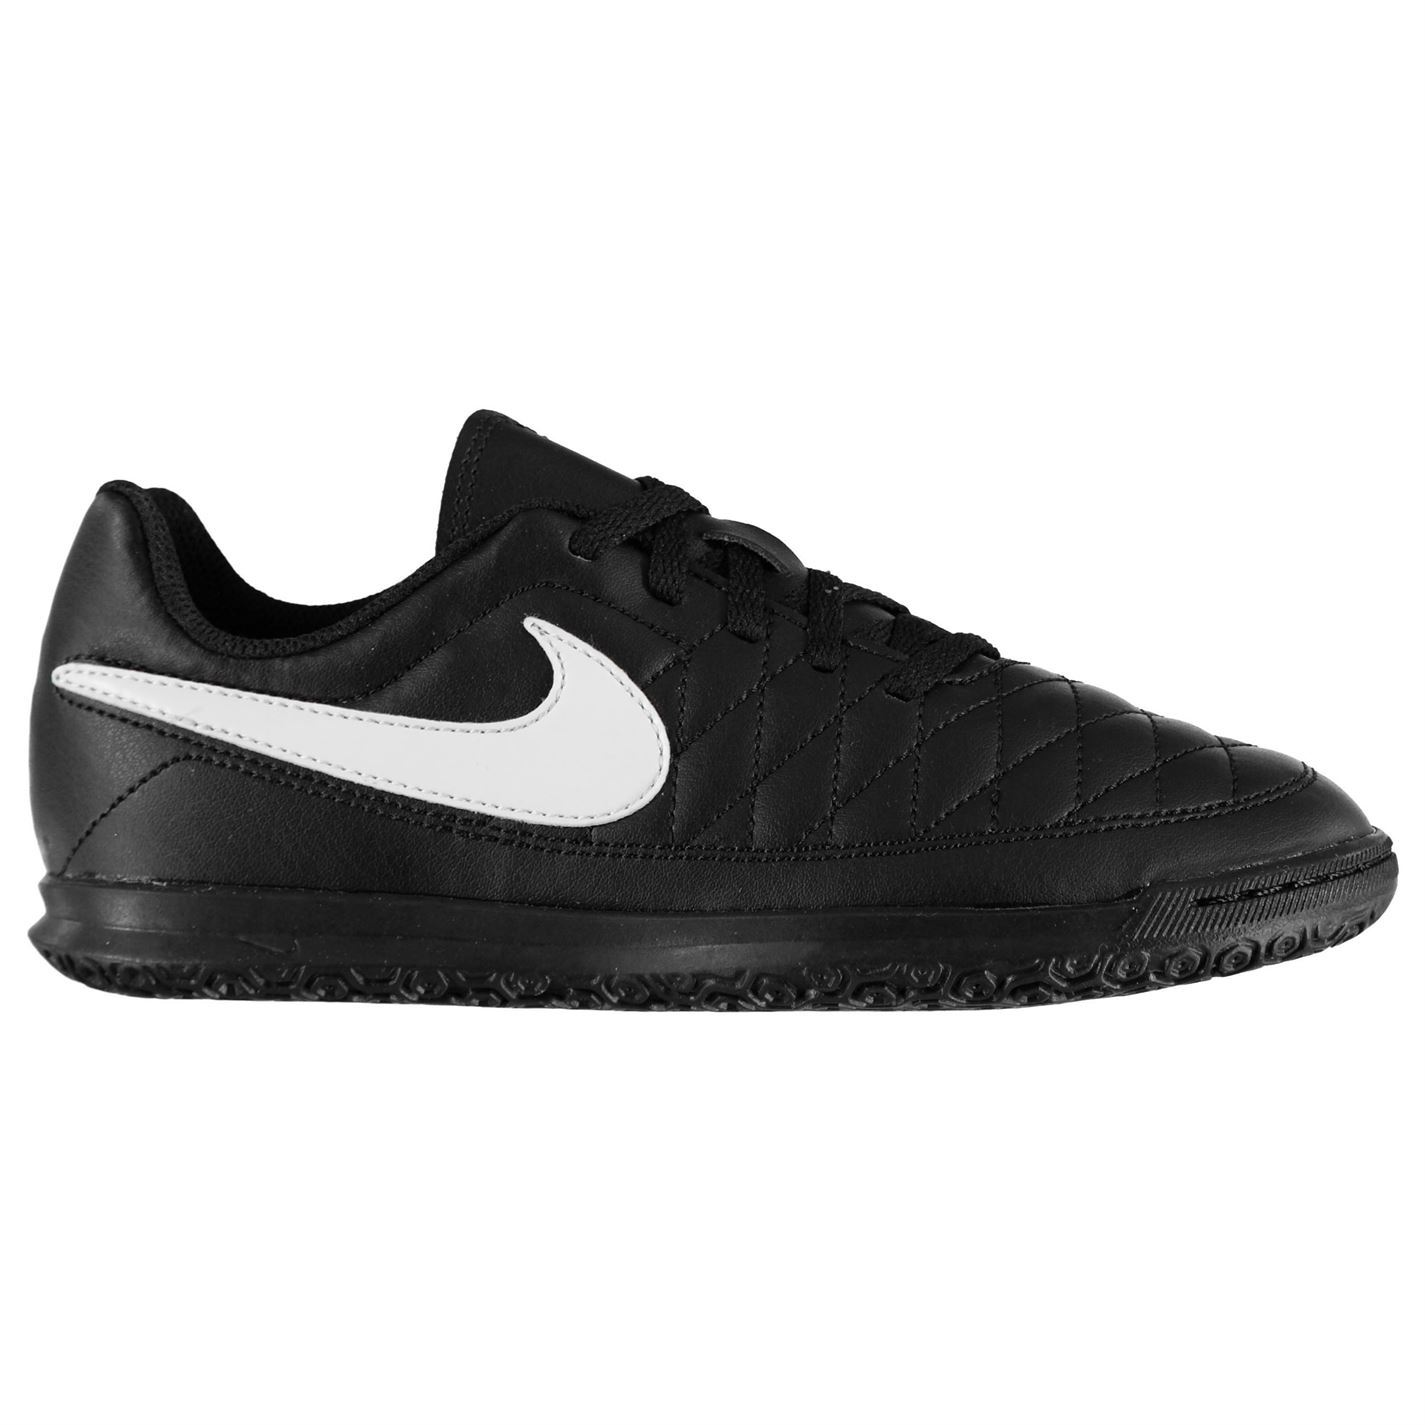 Nike-majestry-Indoor-Court-Football-Baskets-enfant-foot-baskets-chaussures miniature 13